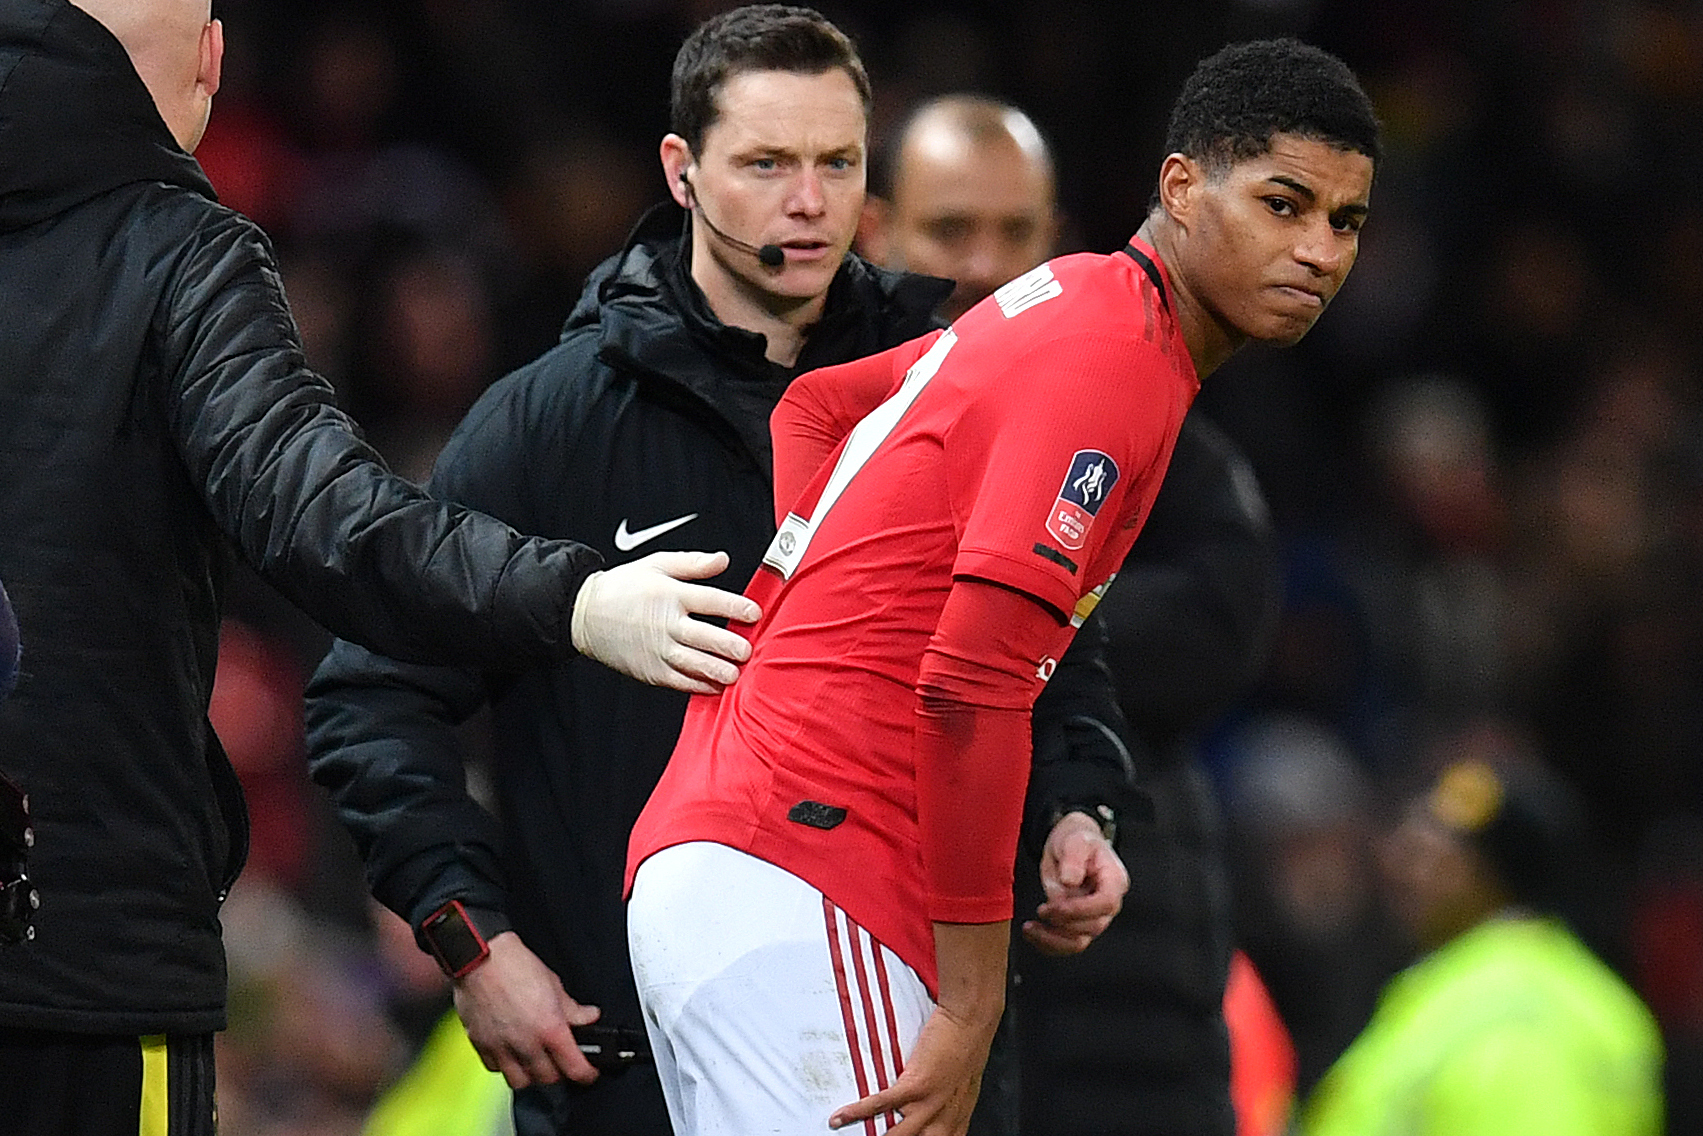 Manchester United S Marcus Rashford Reportedly Out 2 3 Months With Back Injury Bleacher Report Latest News Videos And Highlights